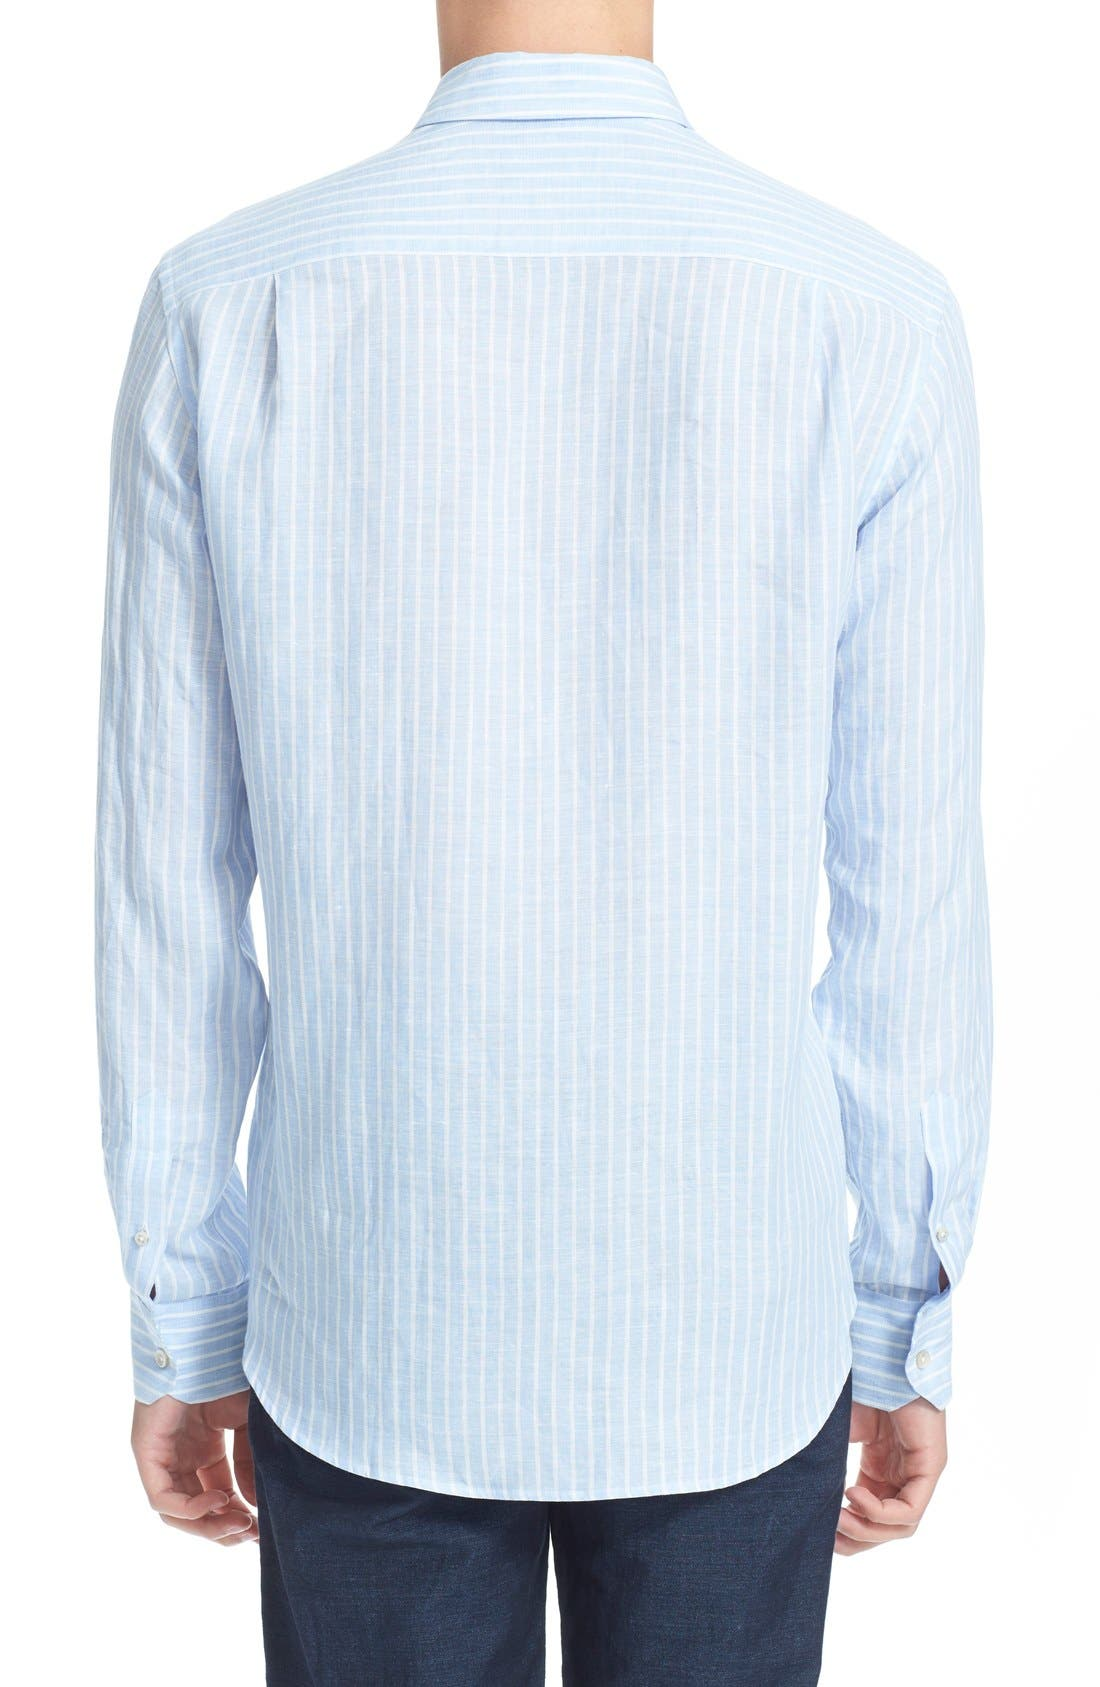 Alternate Image 3  - Vilebrequin 'Carrix' Trim Fit Stripe Linen Shirt